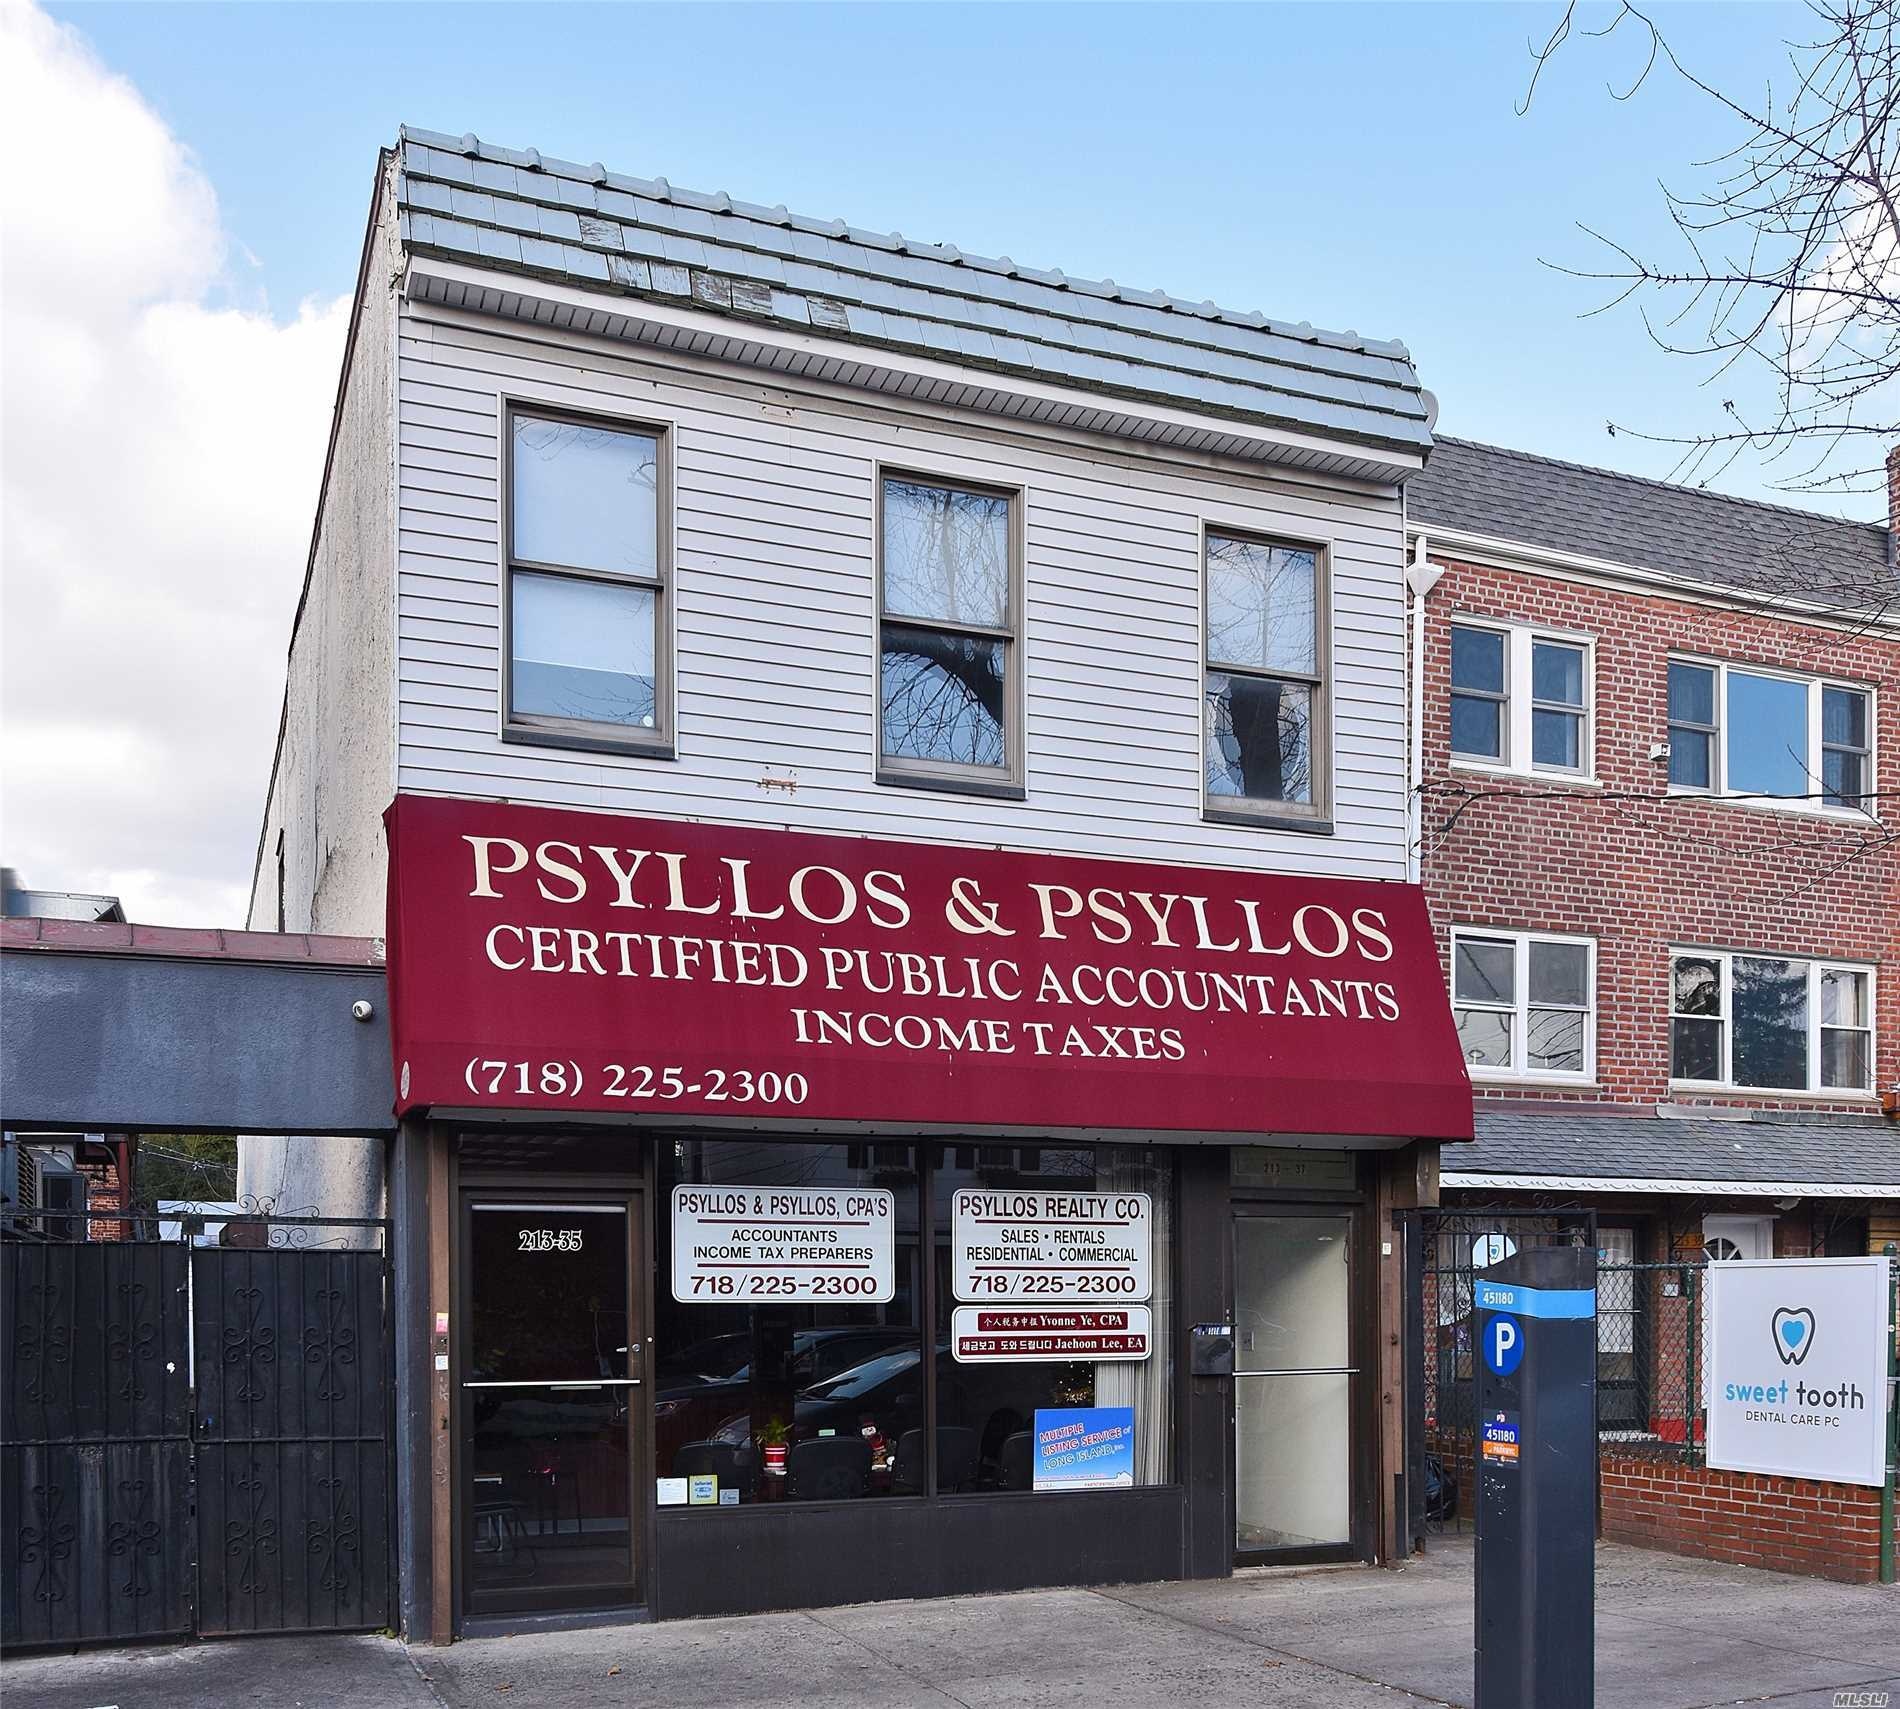 1500 Sqft Office Space On 2nd Floor For Lease. Unbeatable Location, Excellent Foot Traffic, Feet Away From Bell Blvd, 1 Block To Bayside Lirr Station, 1 Block To Municipal Parking Lot, 4 Blocks To Northern Blvd. $3, 500/Month Nn (Prop. Taxes Paid By Landlord, Utilities Paid By Tenant)